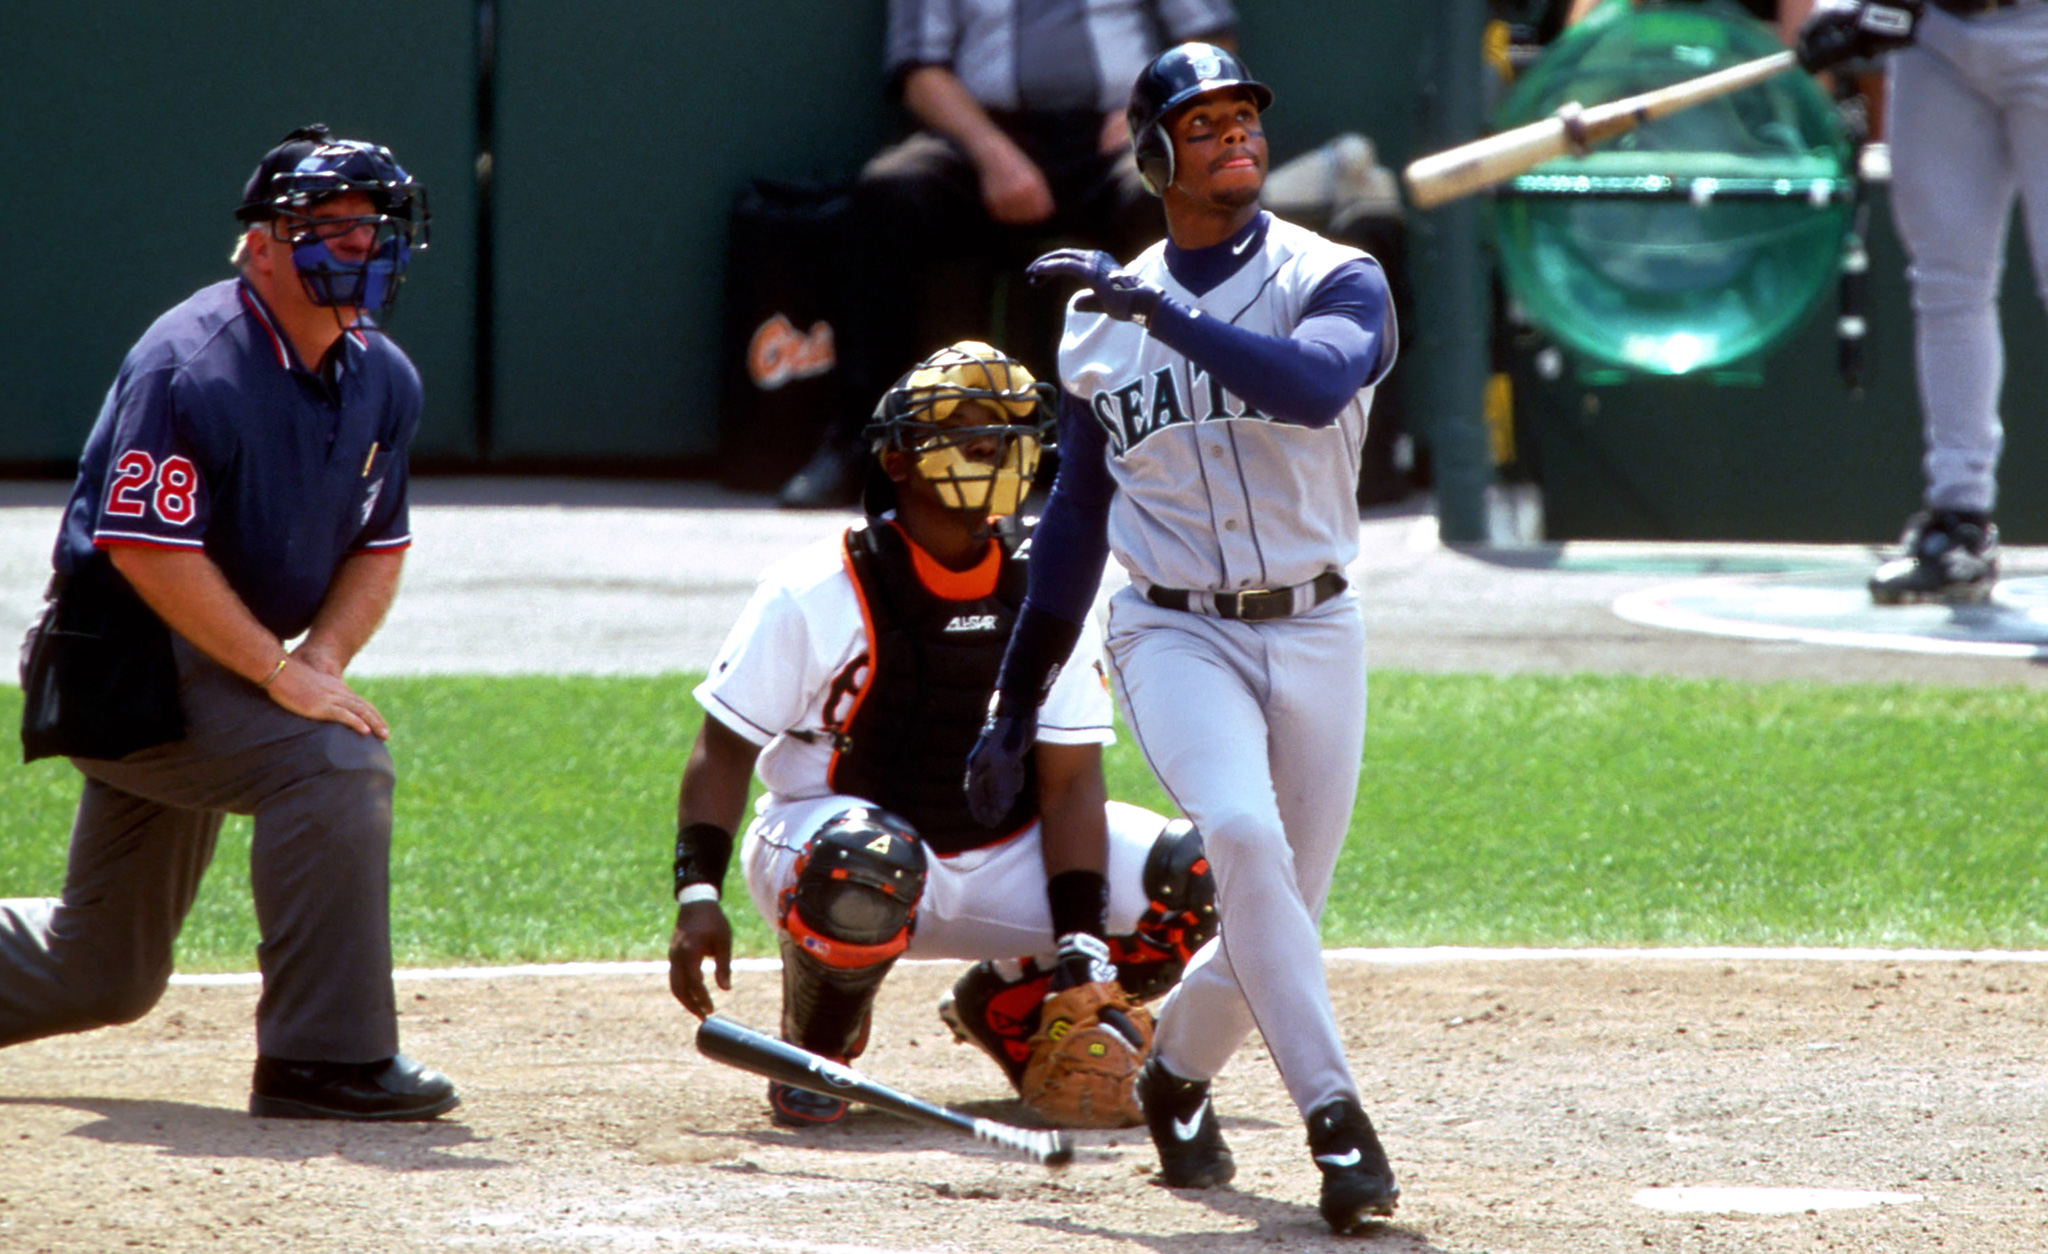 Best Swing: Ken Griffey Jr.